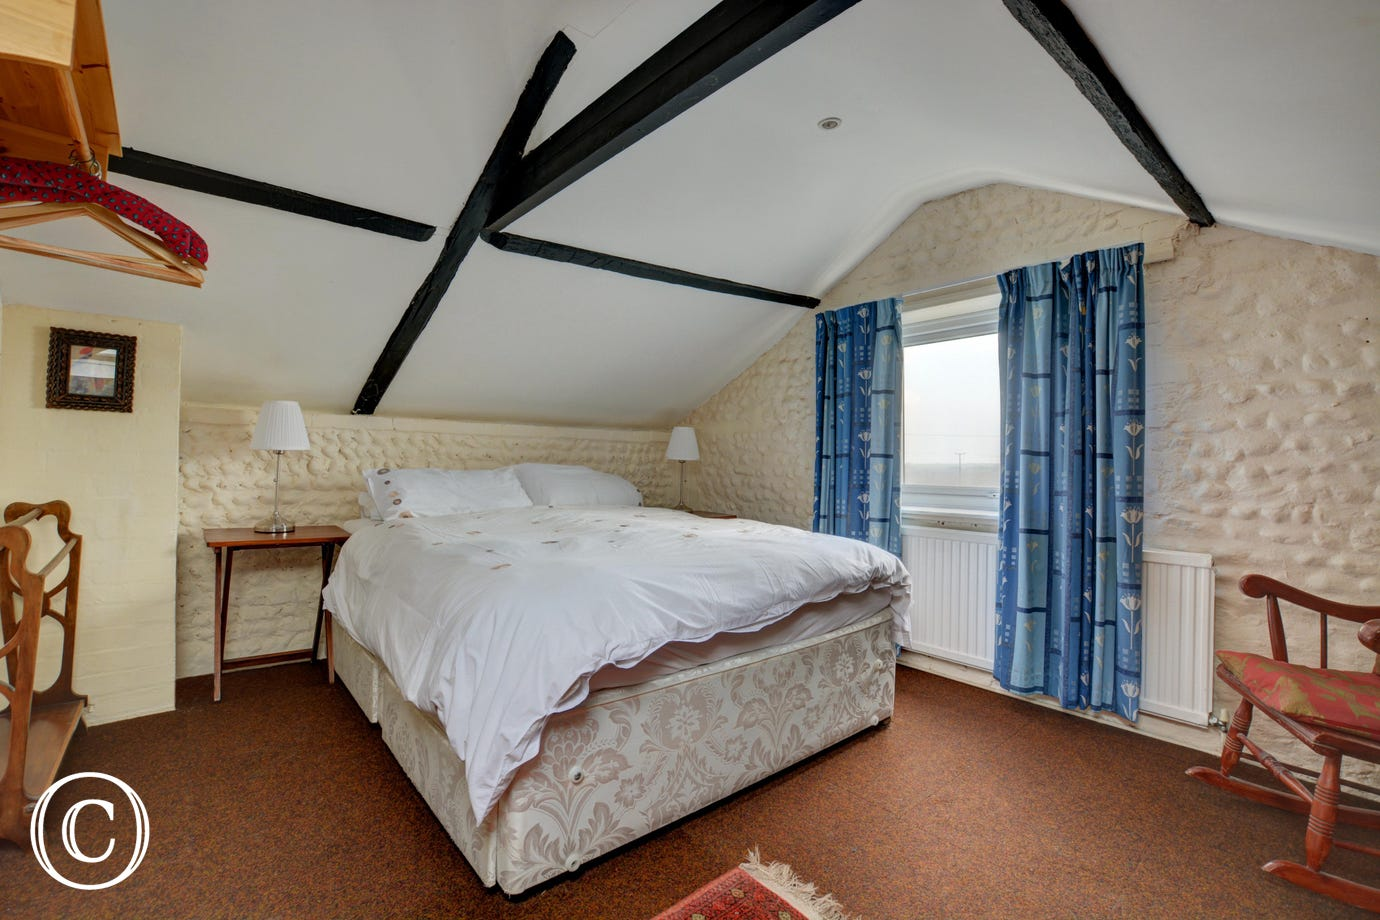 This double bedroom has a king-size bed and En-suite shower room which is accessed from the landing